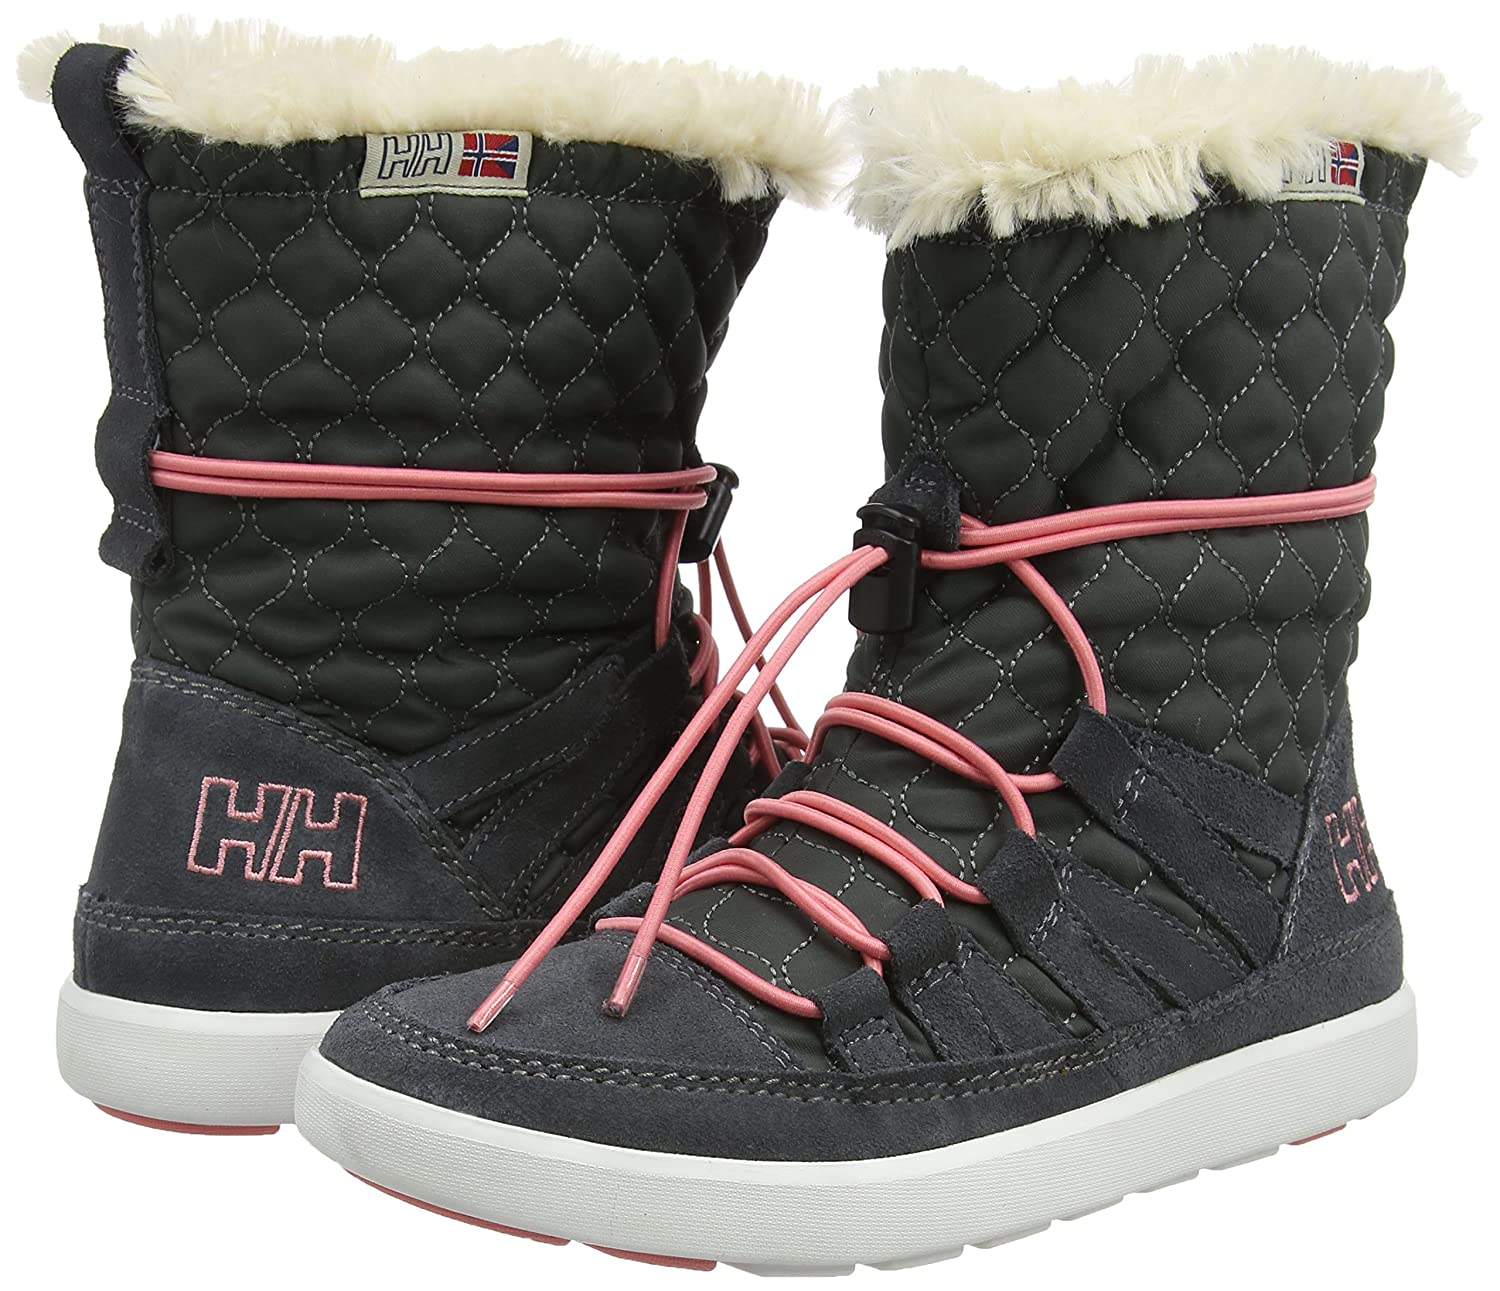 Helly Hansen Women's Harriet Cold Weather Boot B00XIA8CUY 8.5 B(M) US|Charcoal/Ebony/Off White